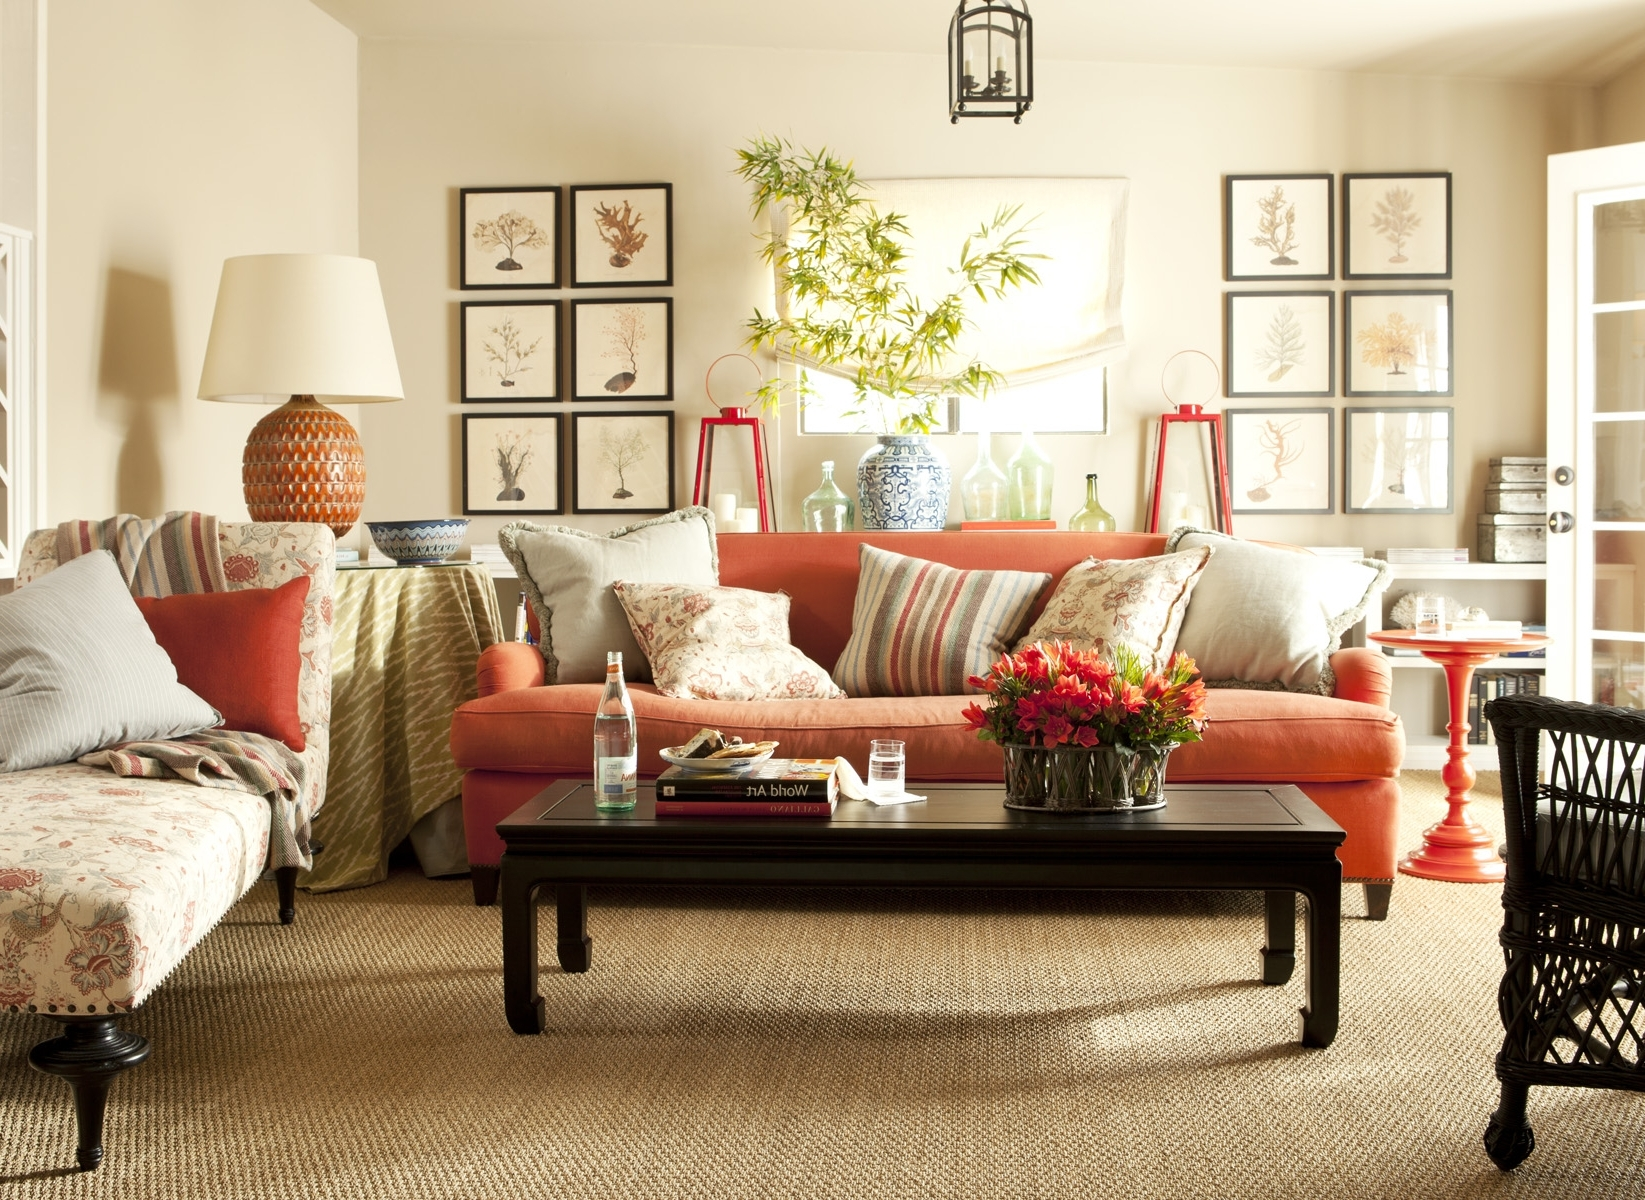 2019 Living Room: Living Room Design Ideas Bright Colorful Sofa Design Regarding Colorful Sofas And Chairs (View 2 of 20)